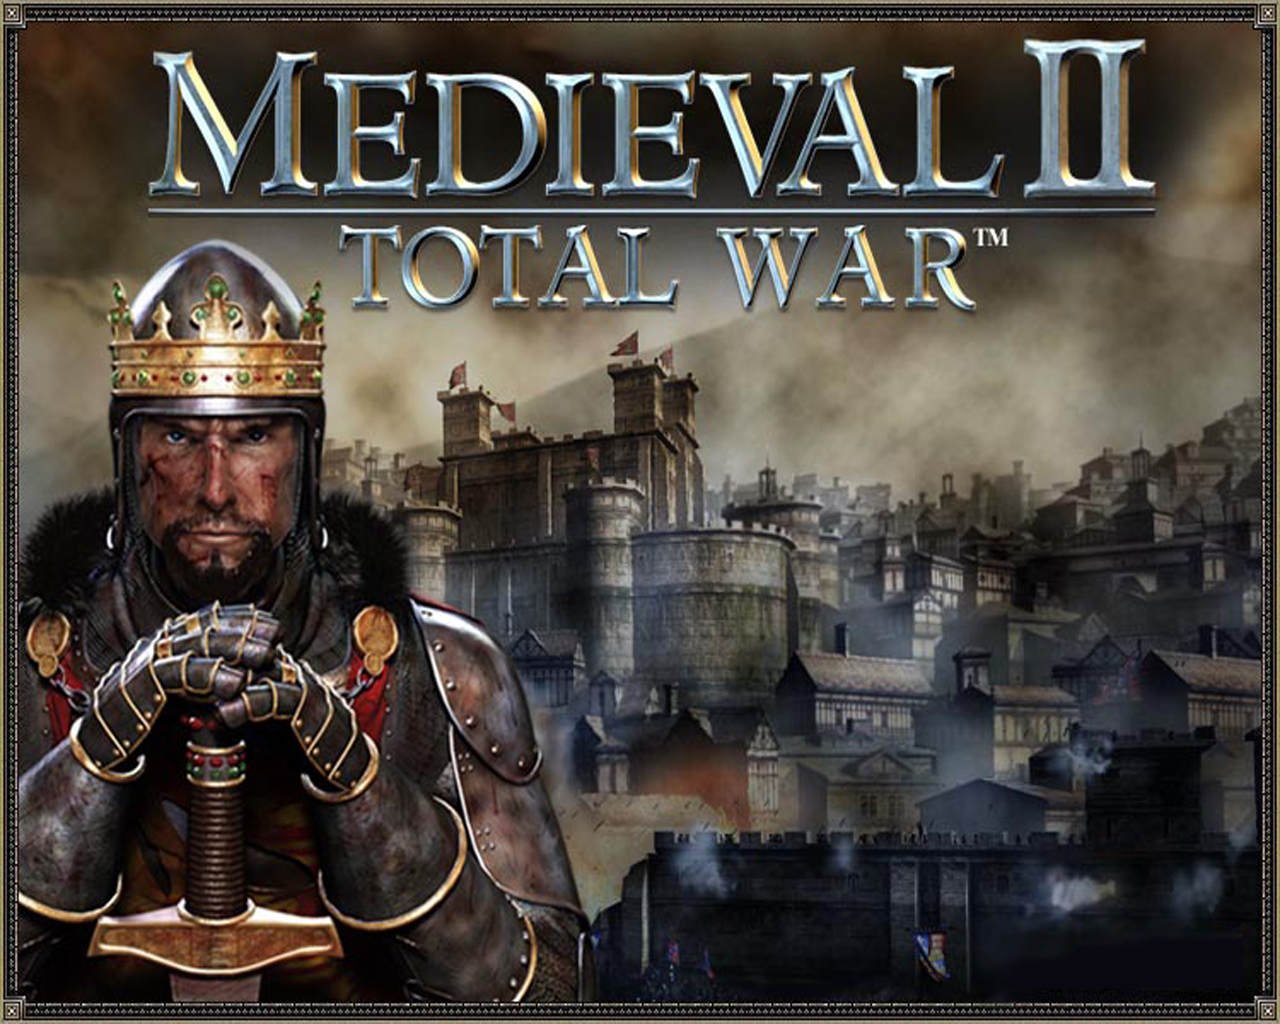 Related Pictures medieval ii total war wallpaper screenshots pictures 1280x1024